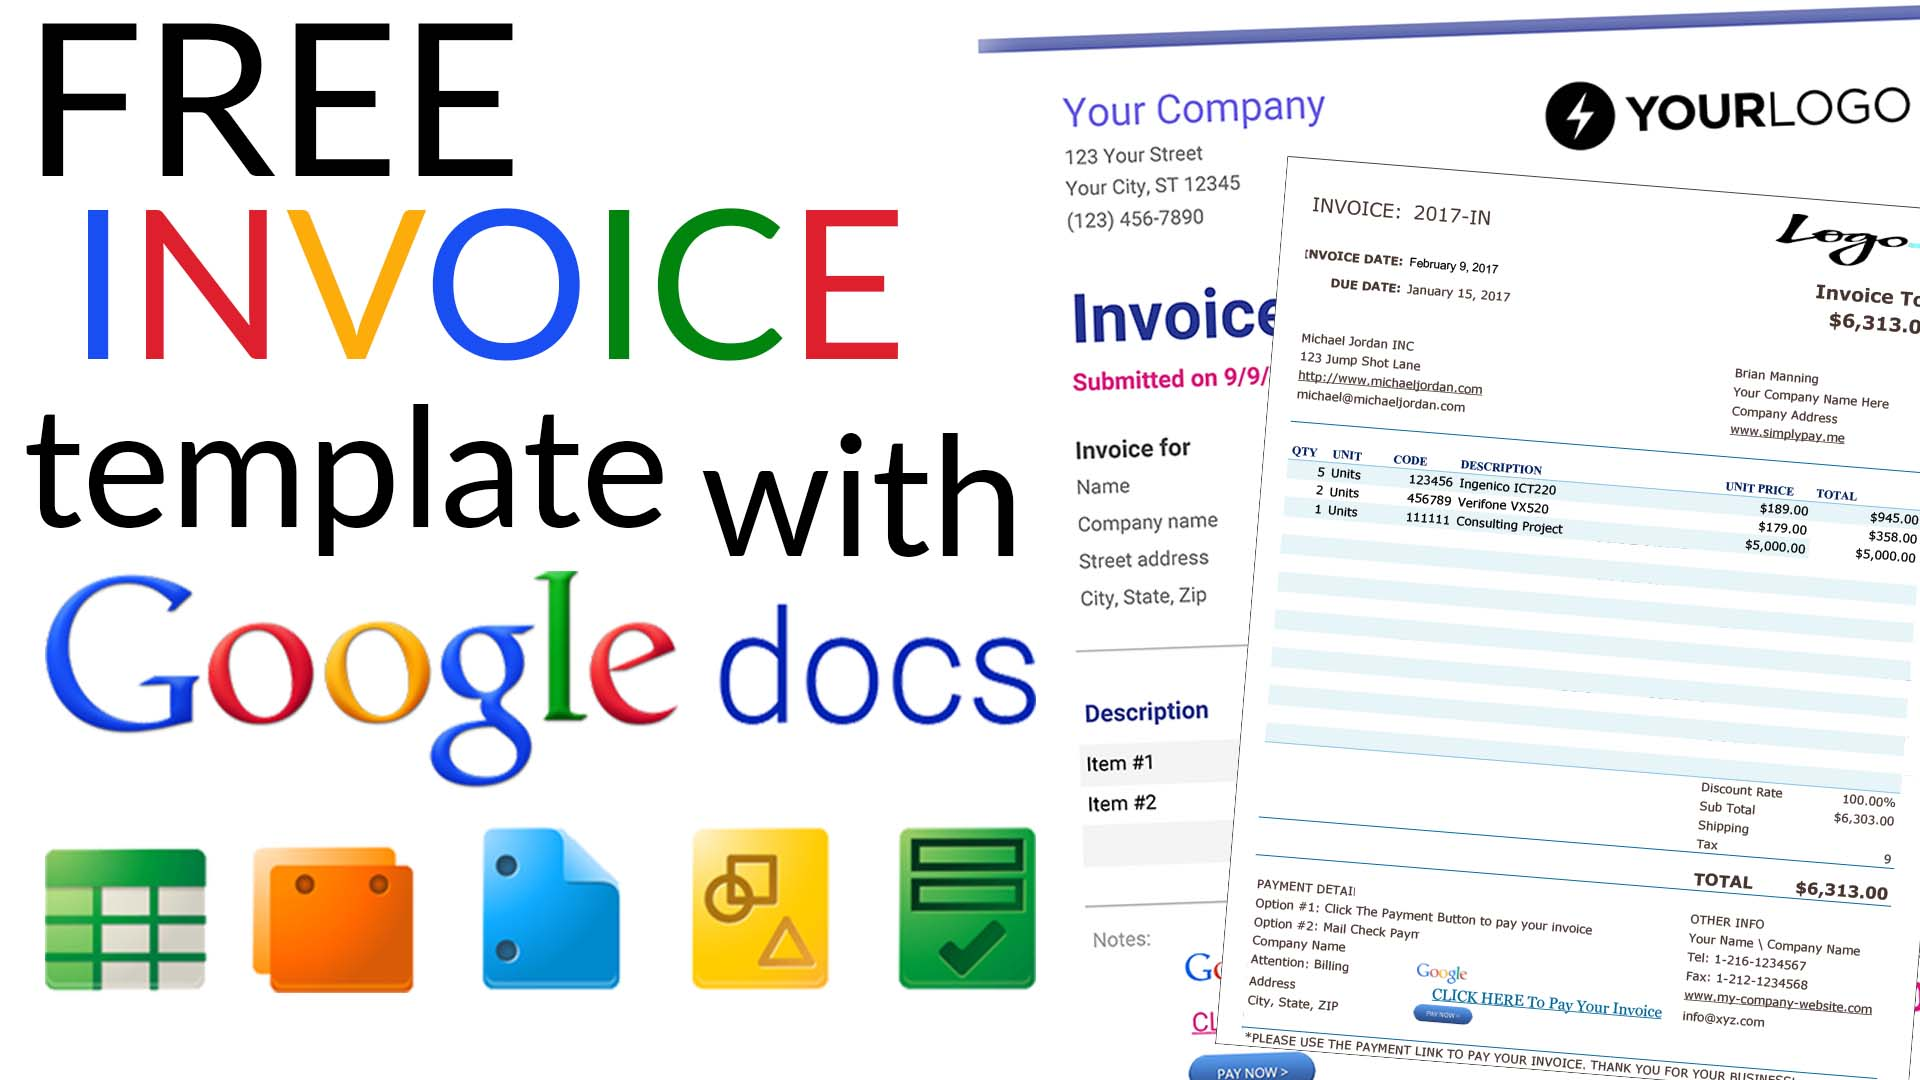 Free Invoice Templates With Docs